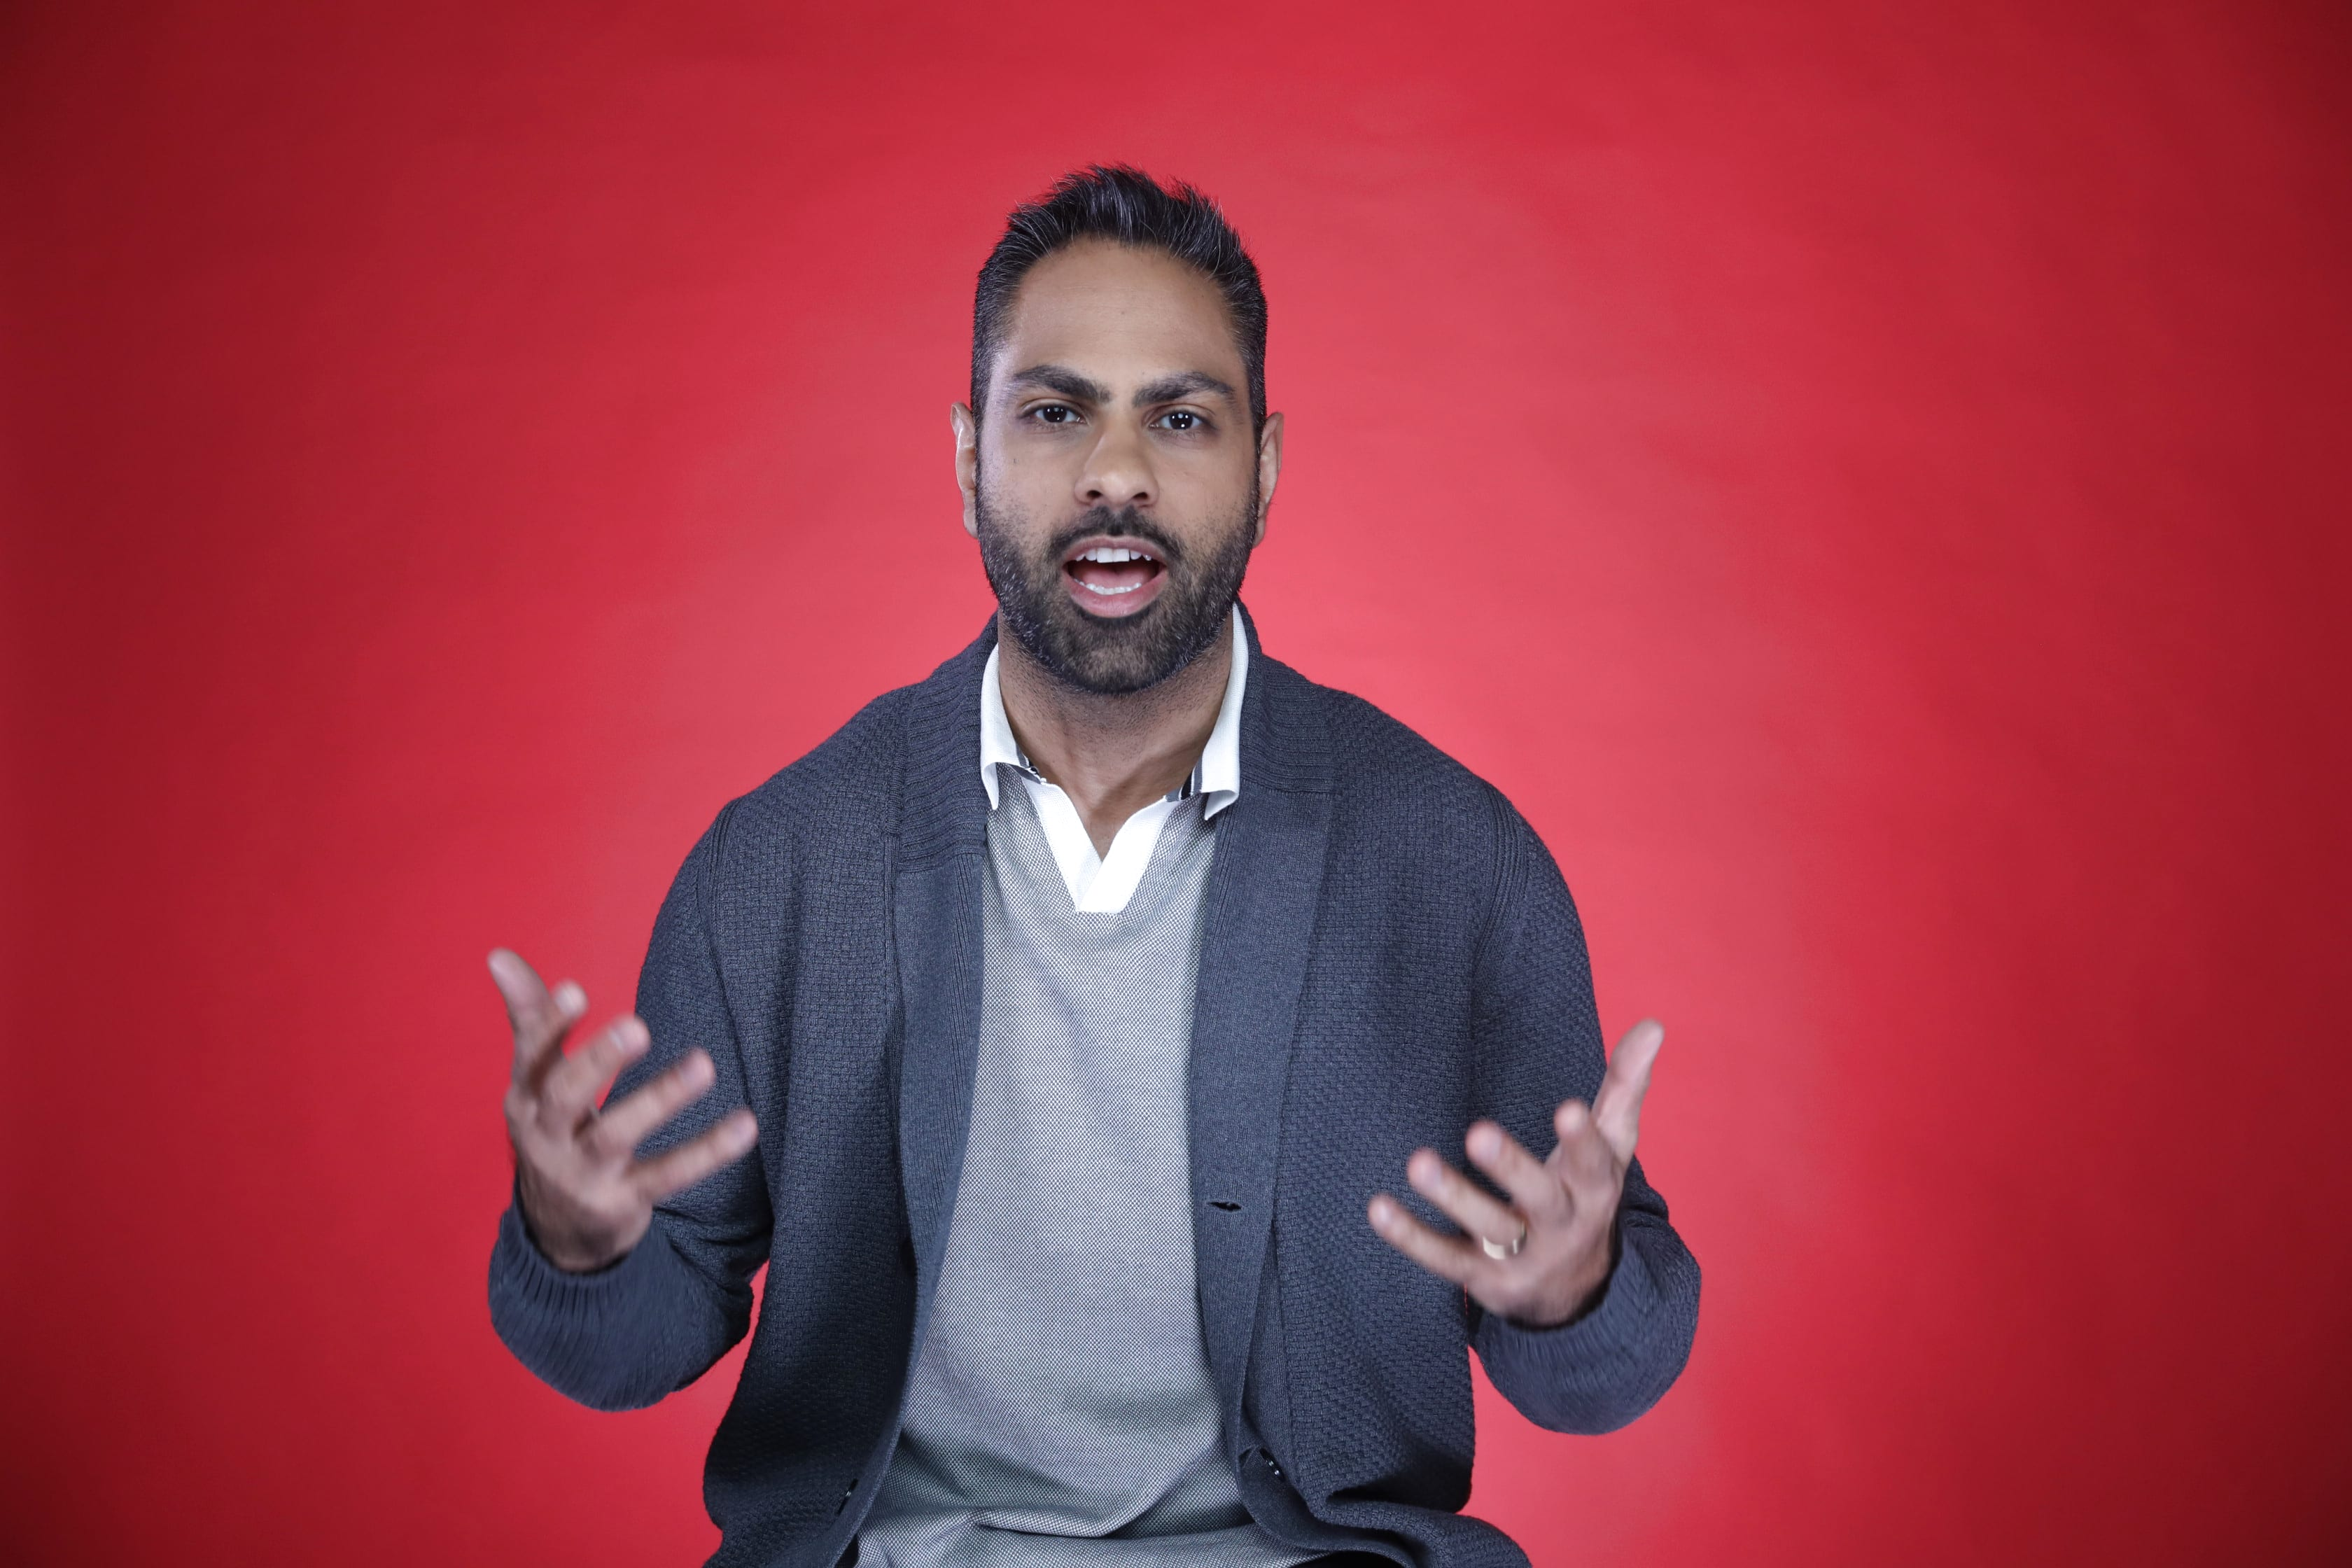 Is grad school worth it? Ramit Sethi says here's how to decide